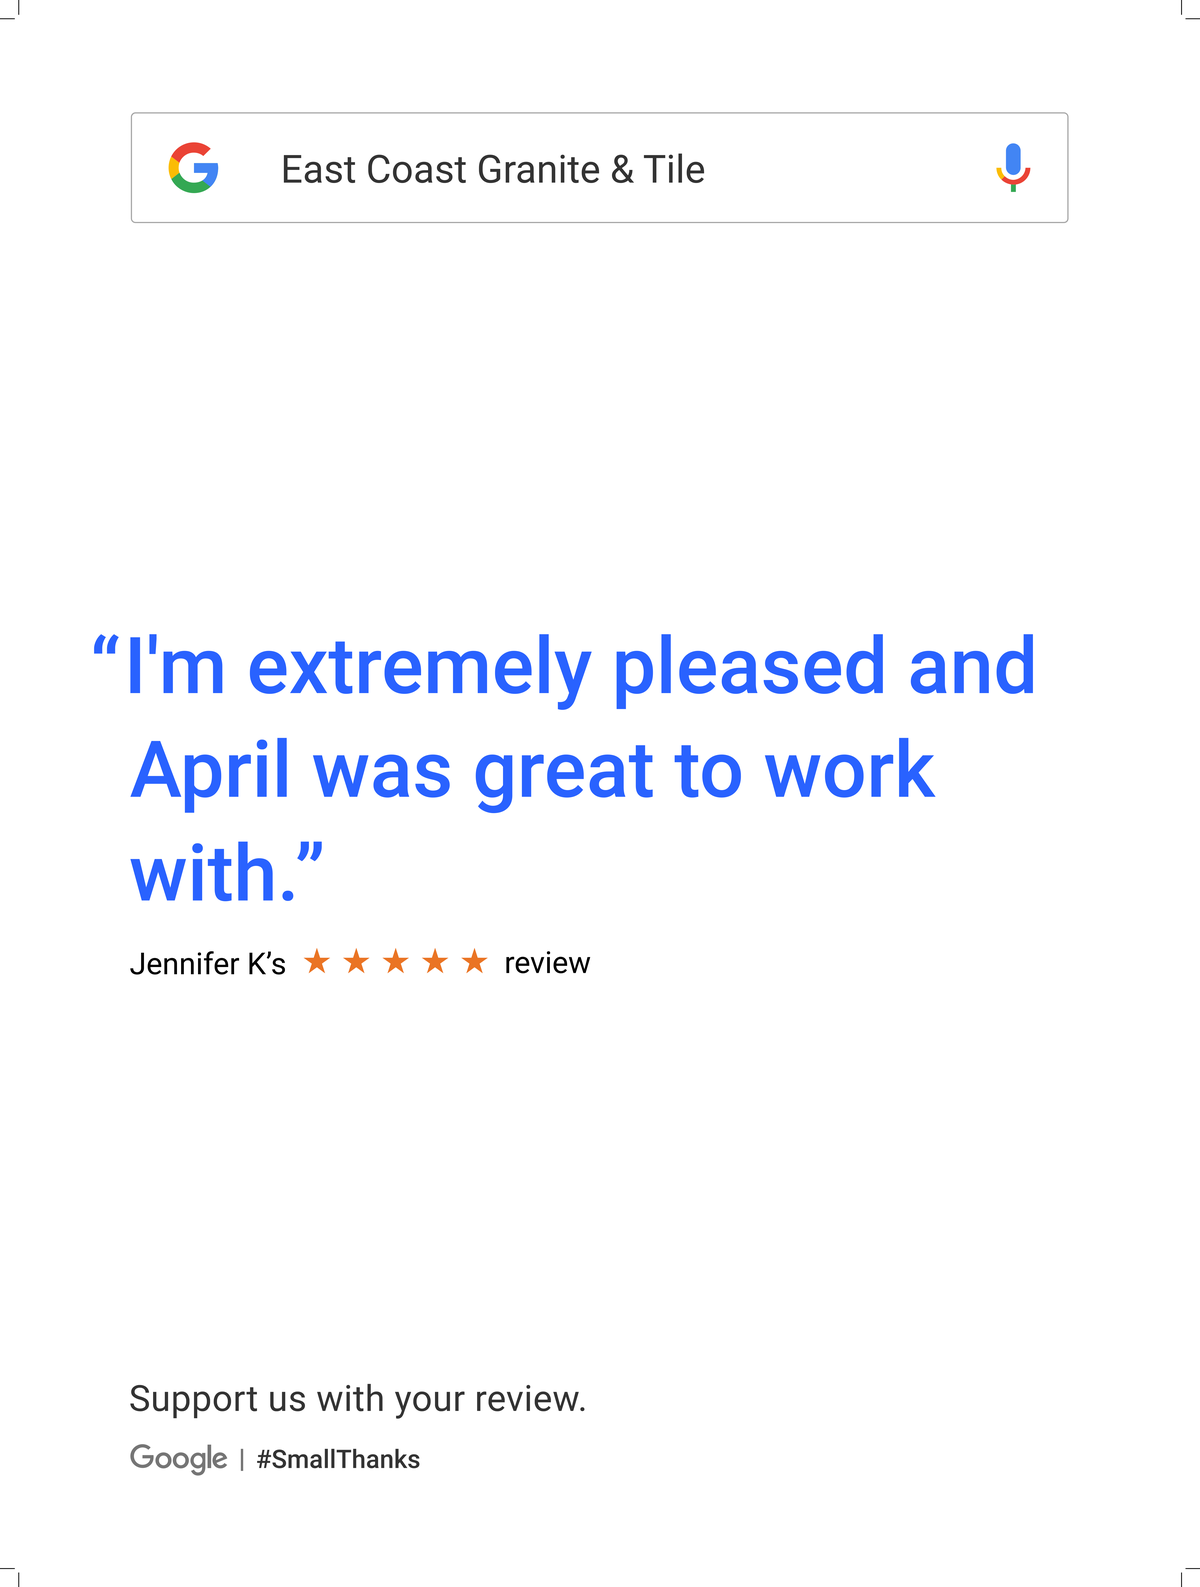 Google Review Greenville from Jennifer K - I am extremely pleased and April was great to work with